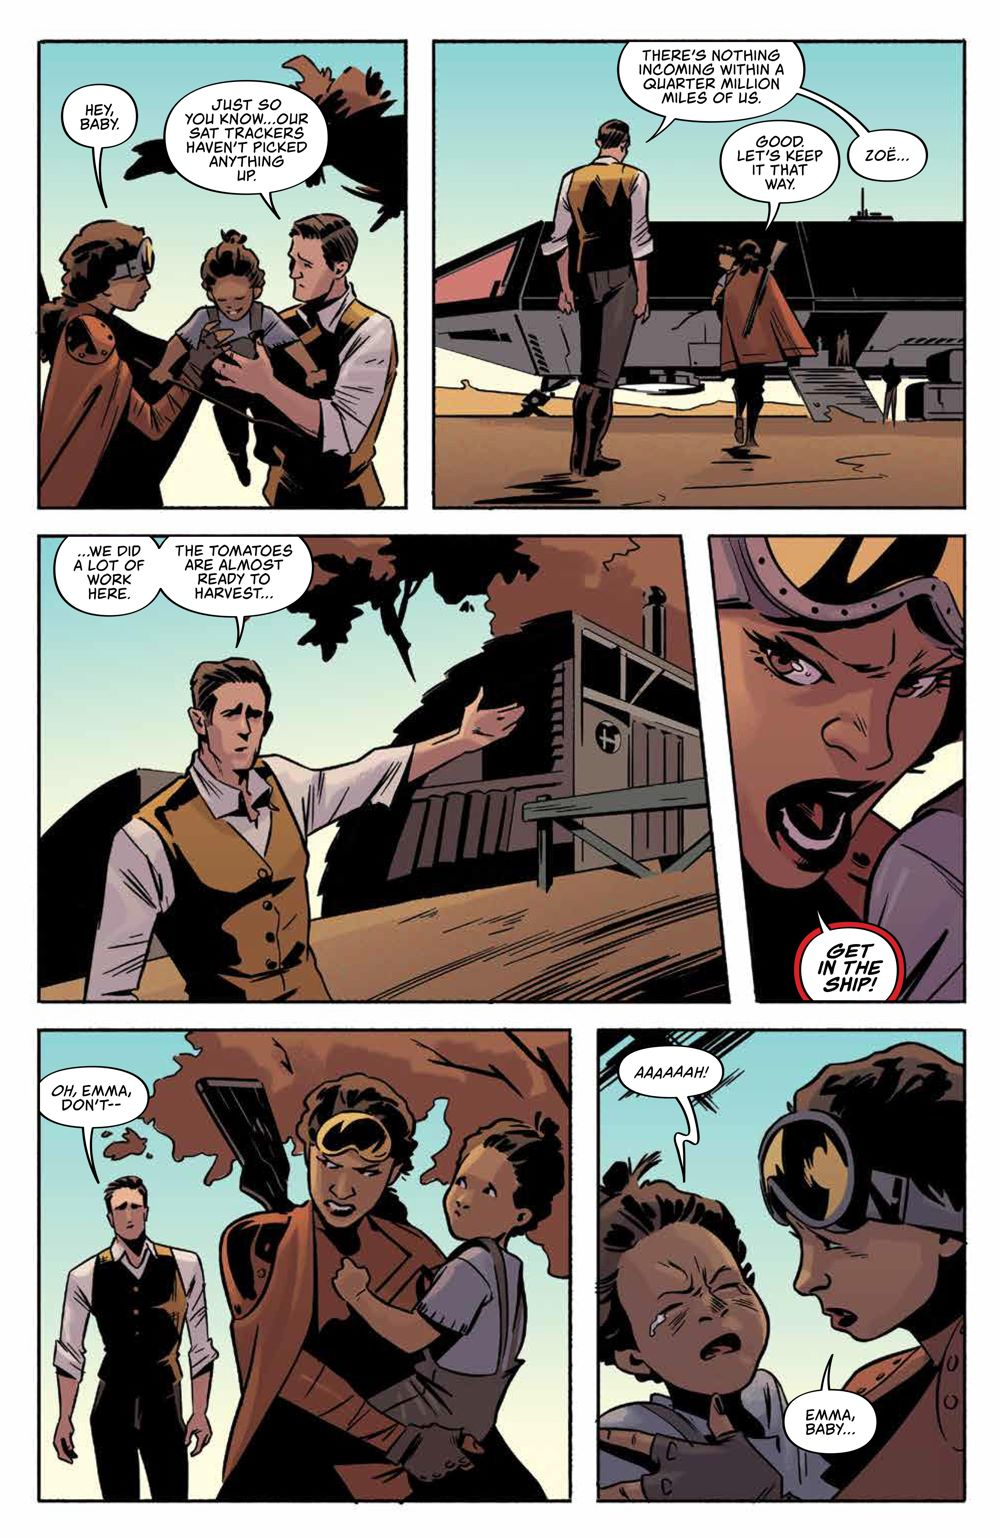 Firefly_ReturnToEarth_v1_HC_PRESS_19 ComicList Previews: FIREFLY RETURN TO THE EARTH THAT WAS VOLUME 1 HC